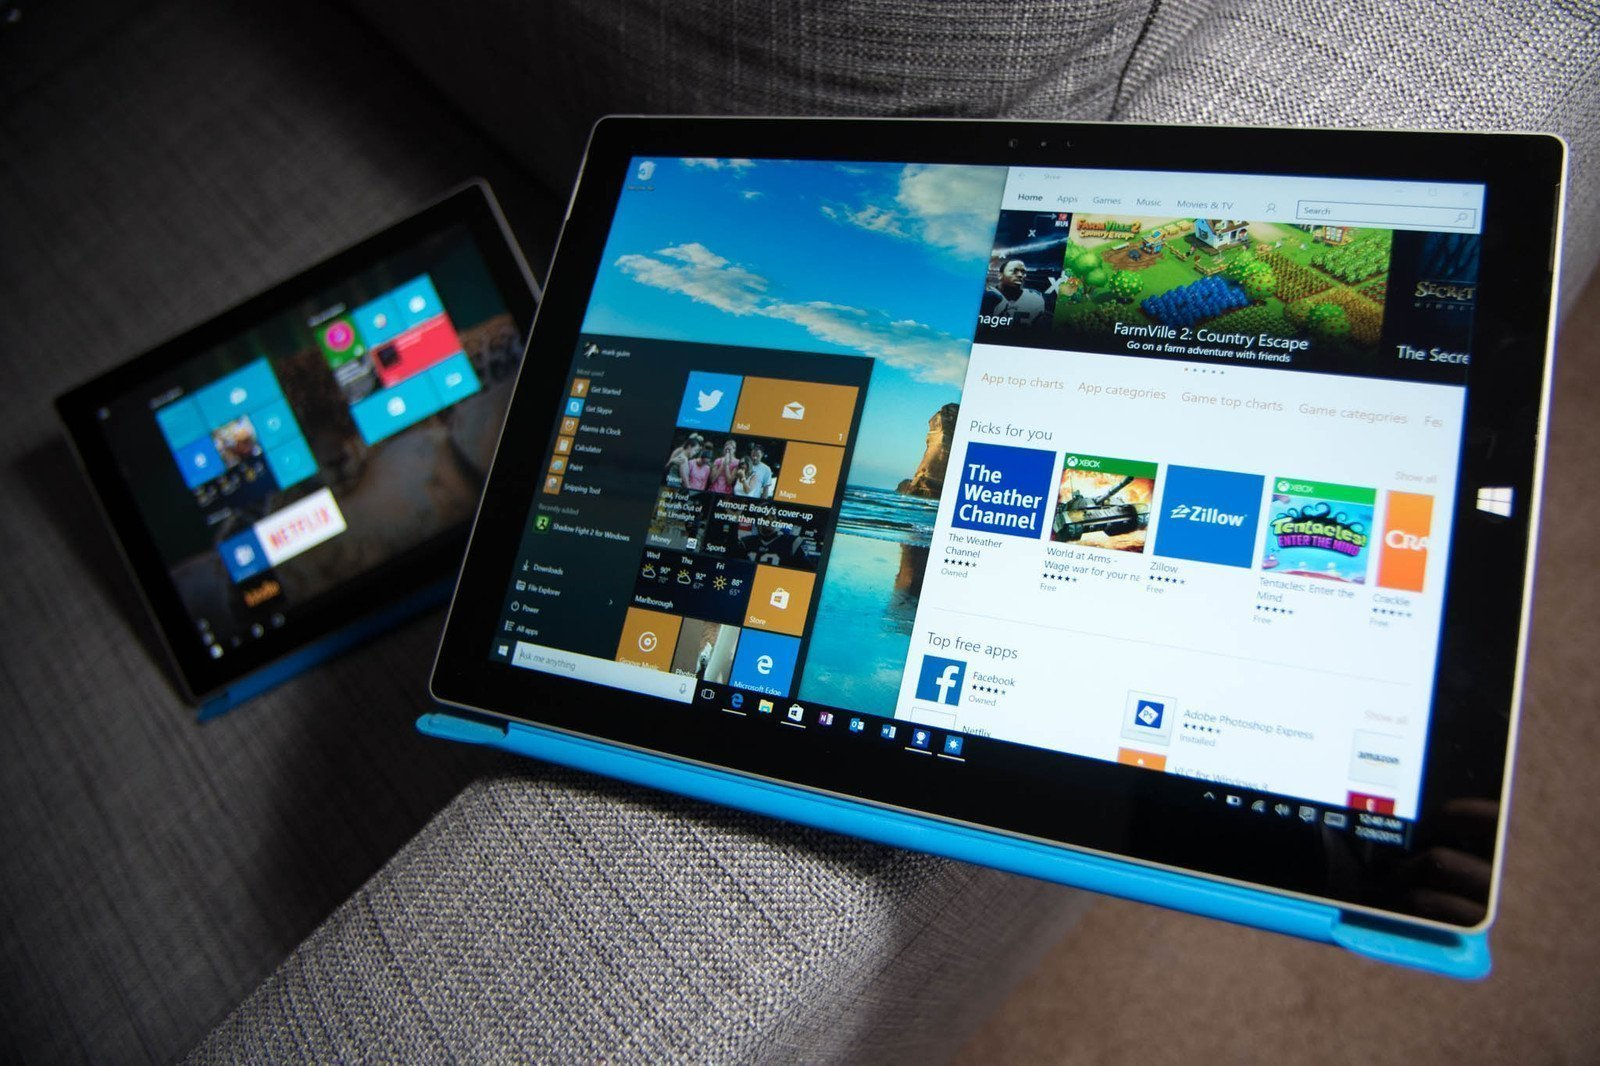 Here's how you can install Windows 10 October 2018 update on